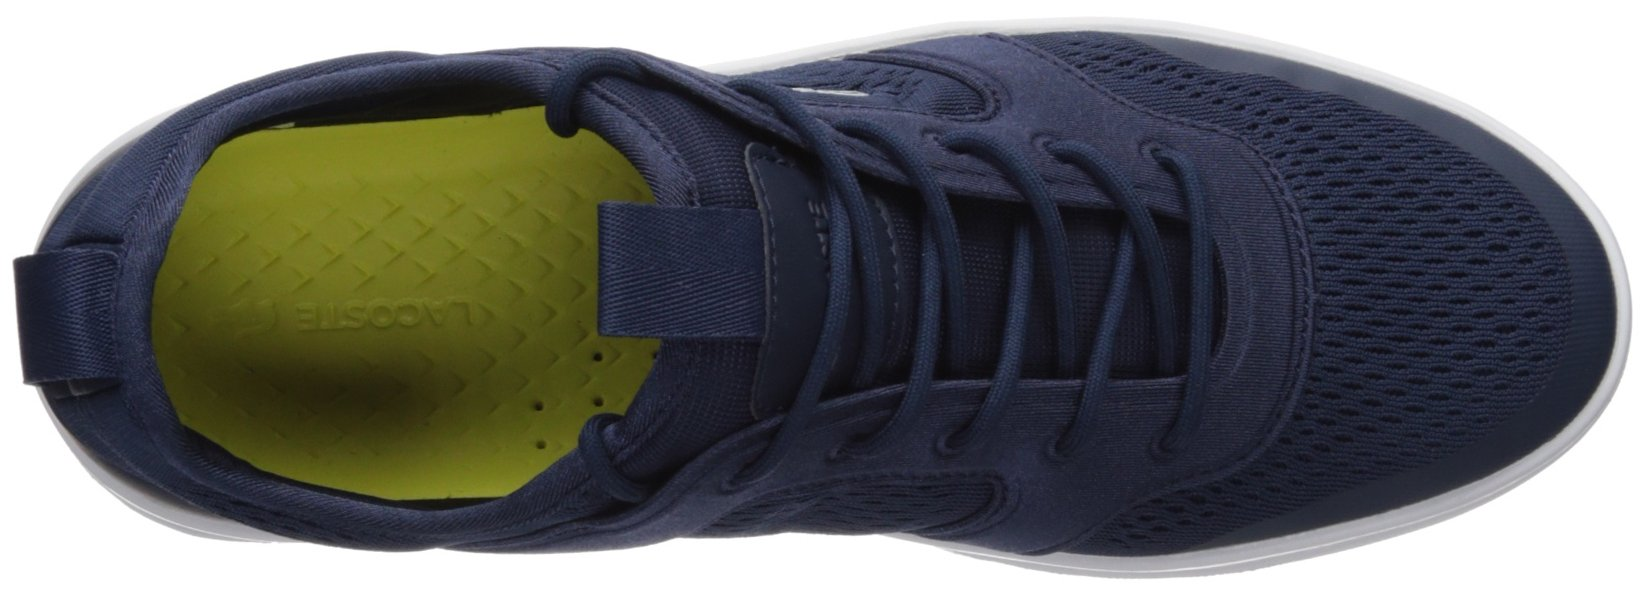 Lacoste Men's Explorateur Sport Sneaker, Navy, 9.5 M US by Lacoste (Image #8)